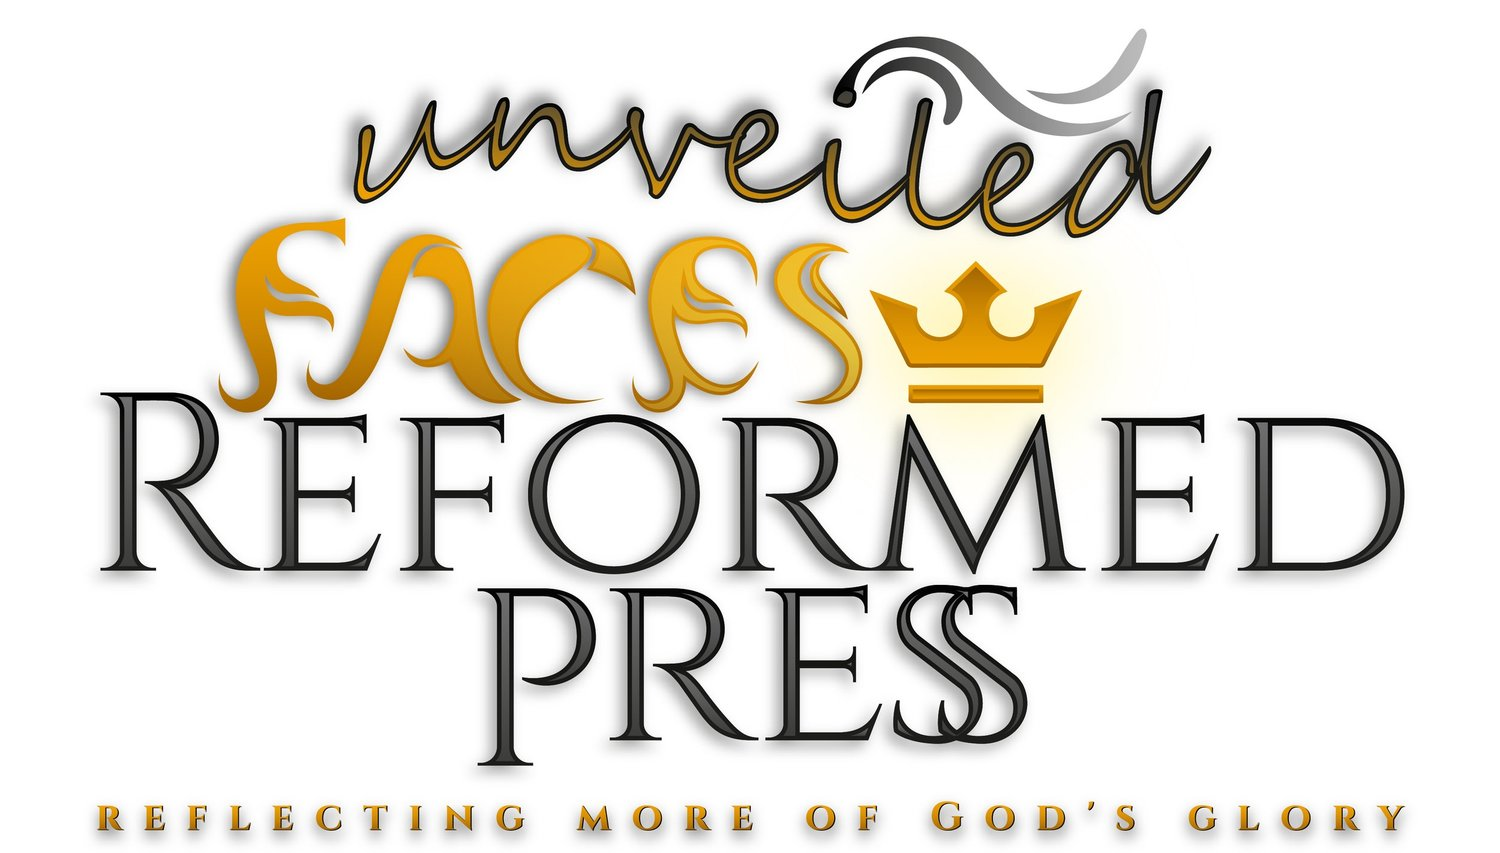 Unveiled Faces Reformed Press